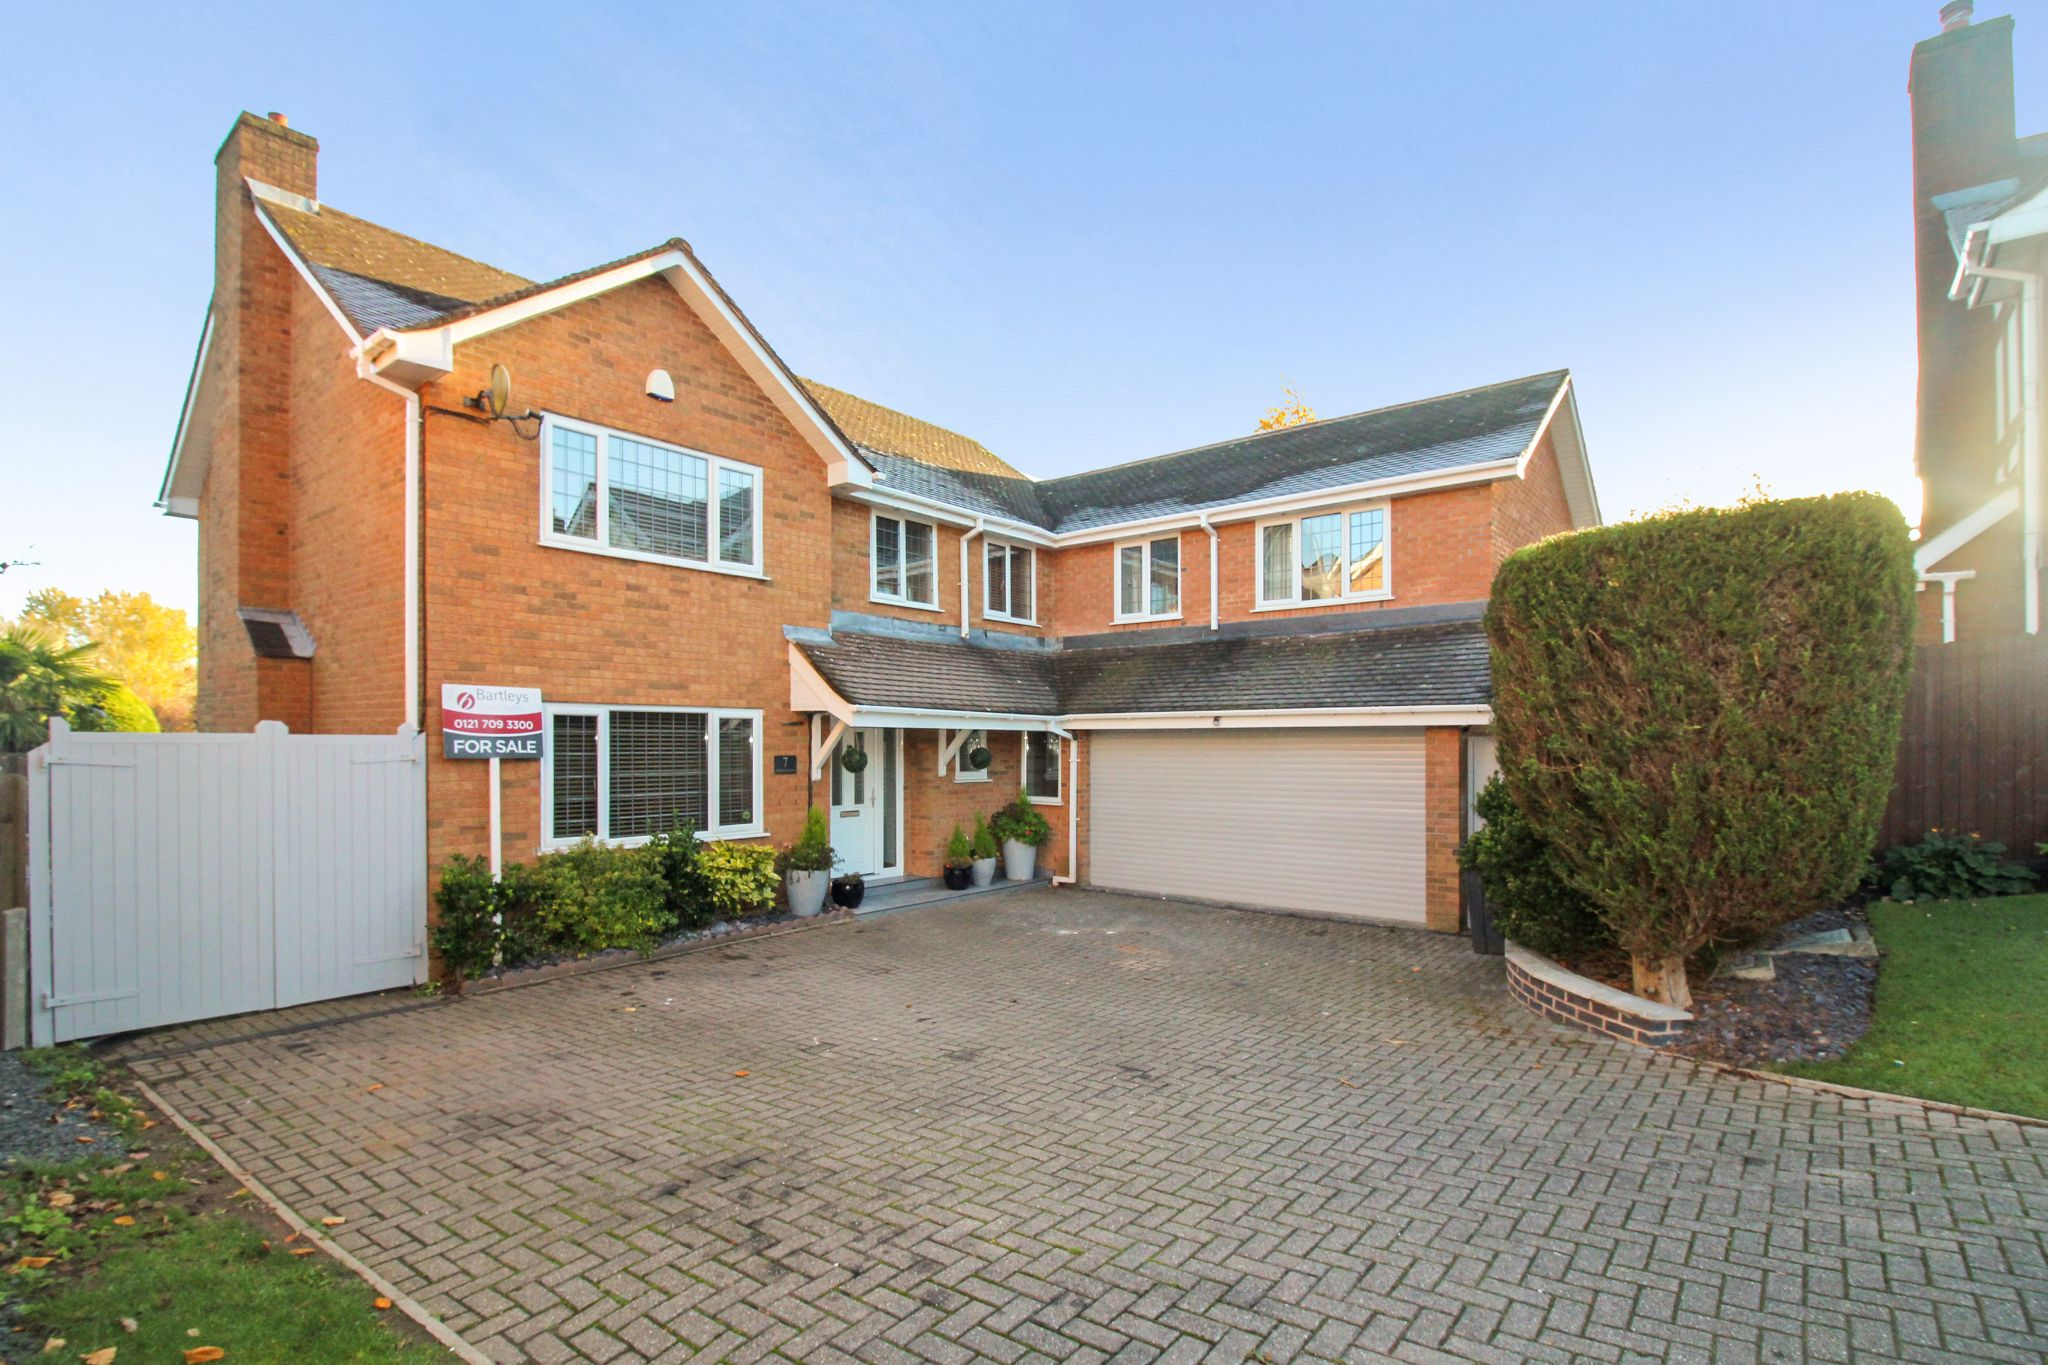 6 bedroom detached house SSTC in Solihull - Photograph 1.